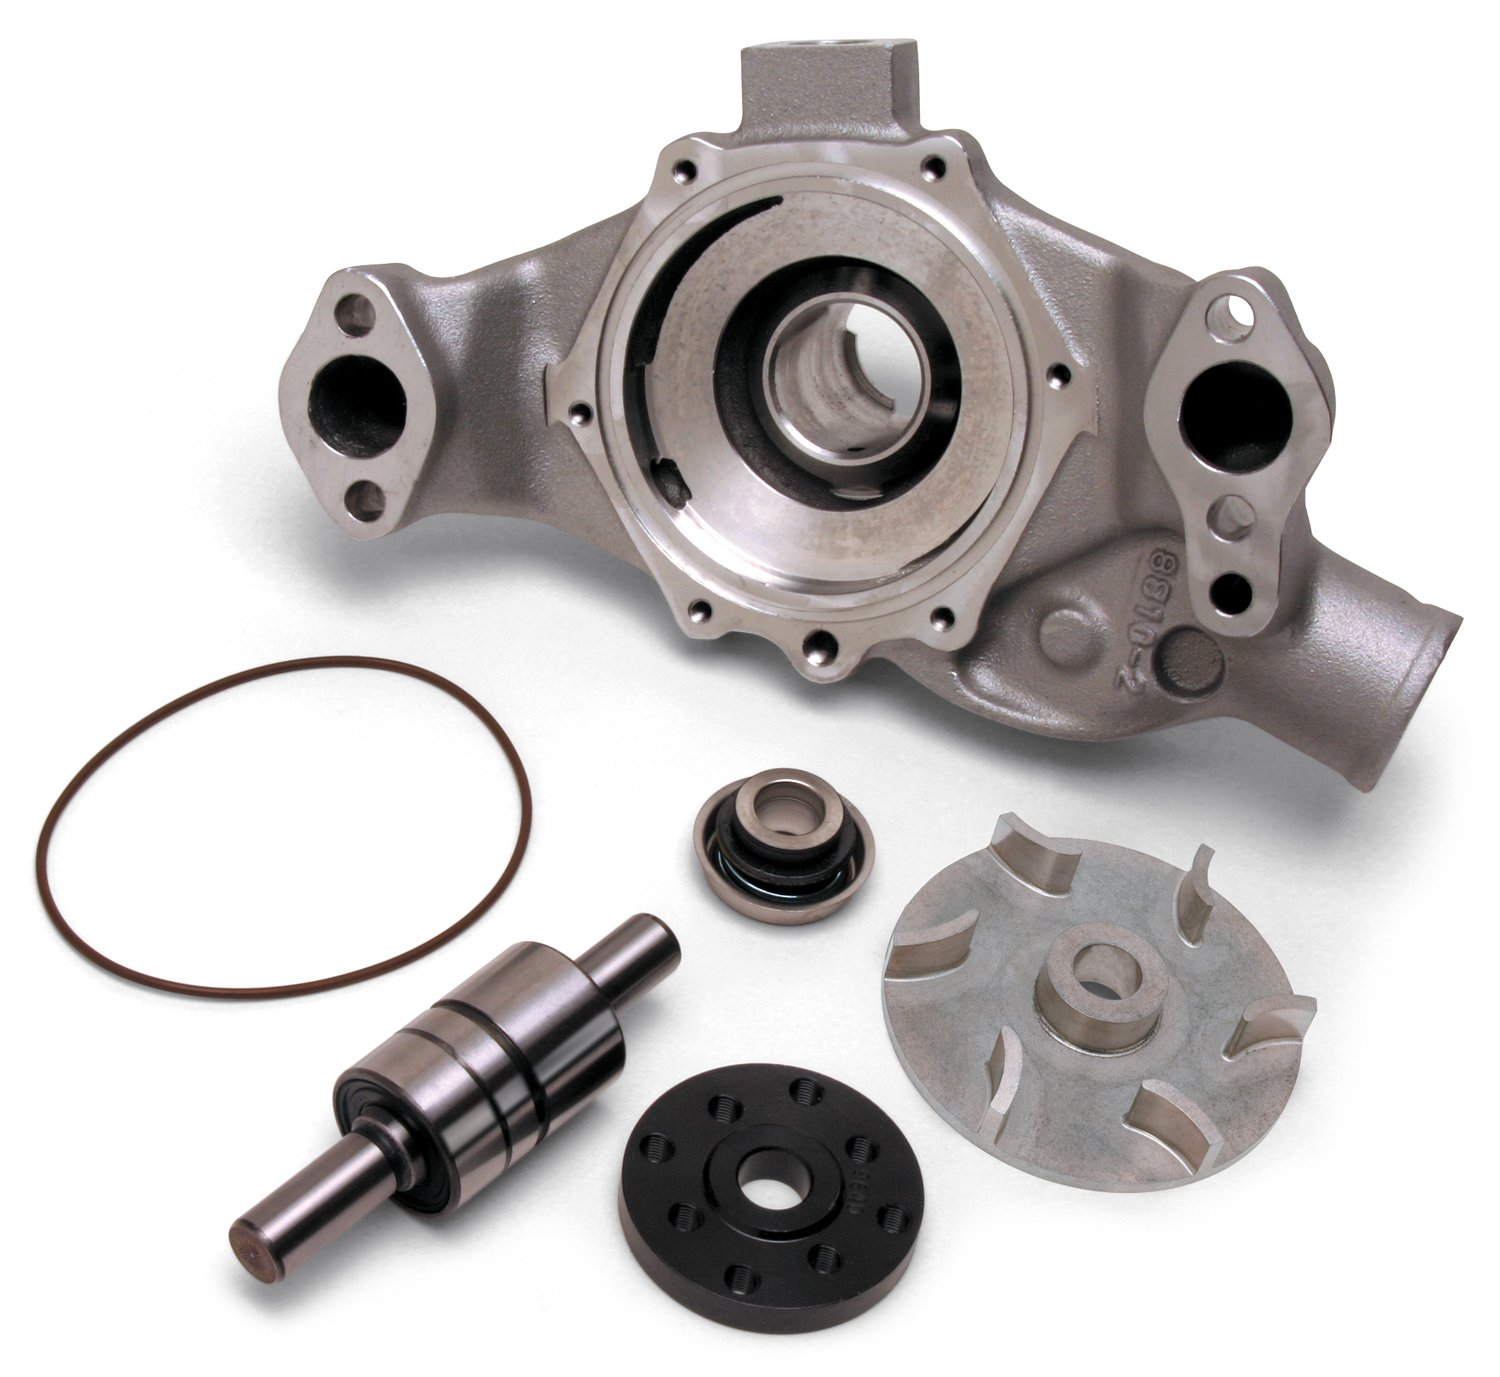 Edelbrock 8810 WATER PUMP by Edelbrock